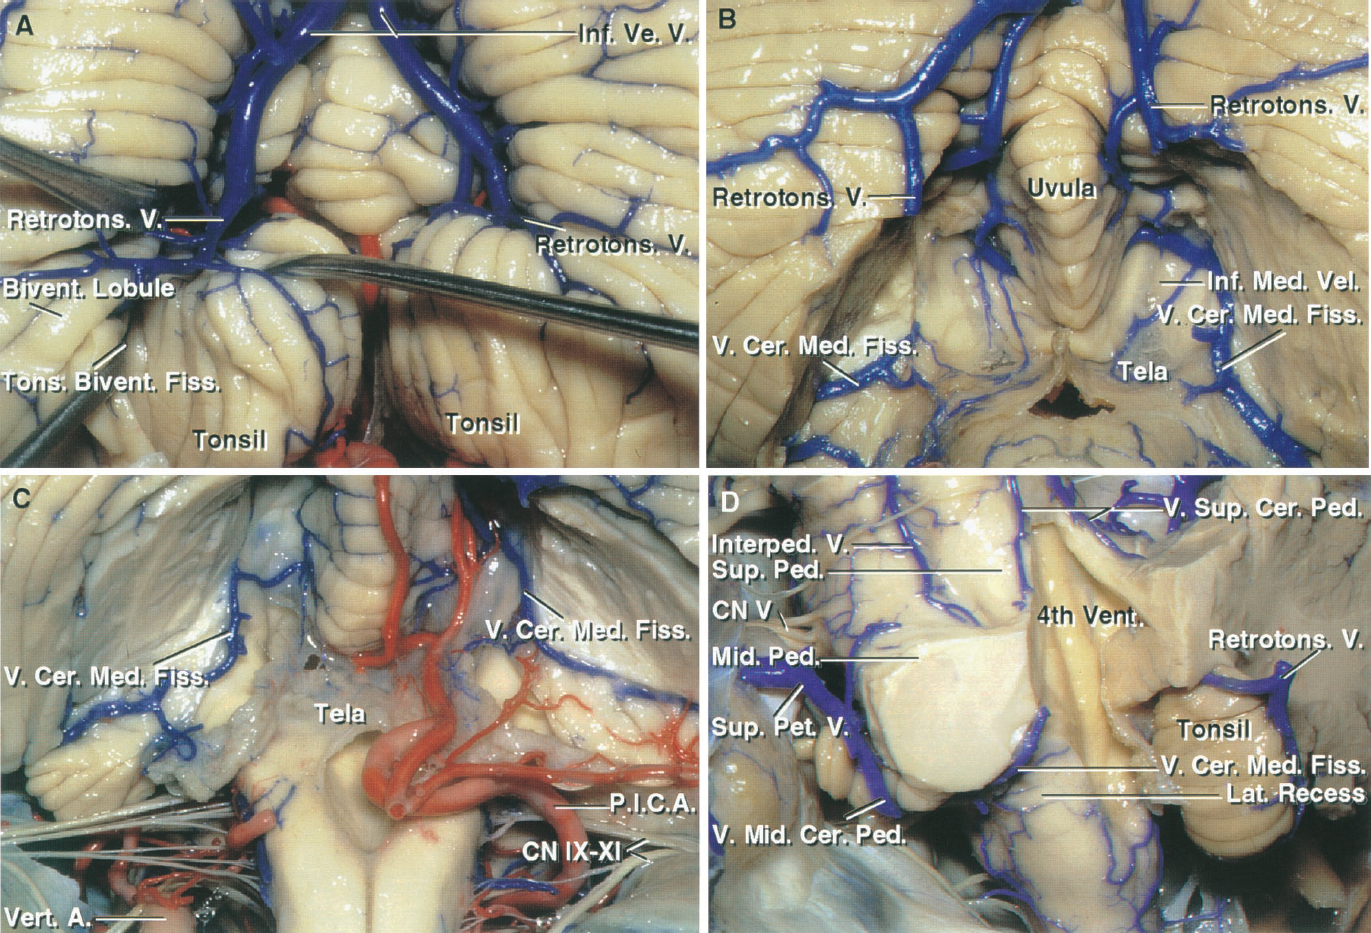 FIGURE 3.8. Suboccipital surface and the cerebellomedullary fissure. A, the retrotonsillar veins pass upward in the fissure between the tonsil and biventral lobule and empty into the inferior vermian veins. B, the tonsils have been removed to expose the veins of the cerebellomedullary fissure, which pass laterally on the inferior medullary velum and across the lateral recesses to join the veins in the cerebellopontine angles. The medial end of the veins of the cerebellomedullary fissure anastomose with the veins around the tonsil. C, another specimen. The tonsils and part of the biventral lobules have been removed to expose the paired veins of the cerebellomedullary fissure, which cross the inferior medullary velum to empty into the veins in the cerebellopontine angles. D, the cerebellar hemispheres, except for the right tonsil, have been removed. The right retrotonsillar vein courses along the posterior surface of the tonsil and empties into an inferior vermian vein. The left vein of the cerebellomedullary fissure passes through the lateral recess to join the vein of the middle cerebellar peduncle, which ascends to empty into a superior petrosal vein. The paired veins of the superior cerebellar peduncle ascend on the peduncle and join to form the vein of the cerebellomesencephalic fissure. An interpeduncular vein courses between the superior and middle cerebellar peduncles. A., artery; Bivent., biventral; Cer., cerebellar; Cer. Med., cerebellomedullary; CN, cranial nerve; Fiss., fissure; Inf., inferior; Interped., interpeduncular; Lat., lateral; Med., medullary; Mid., middle; Ped., peduncle; Pet., petrosal; P.I.C.A., posteroinferior cerebellar artery; Retrotons., retrotonsillar; Sup., superior; Tons., tonsillar; V., vein; Ve., vermian; Vent., ventricle; Vert., vertebral.